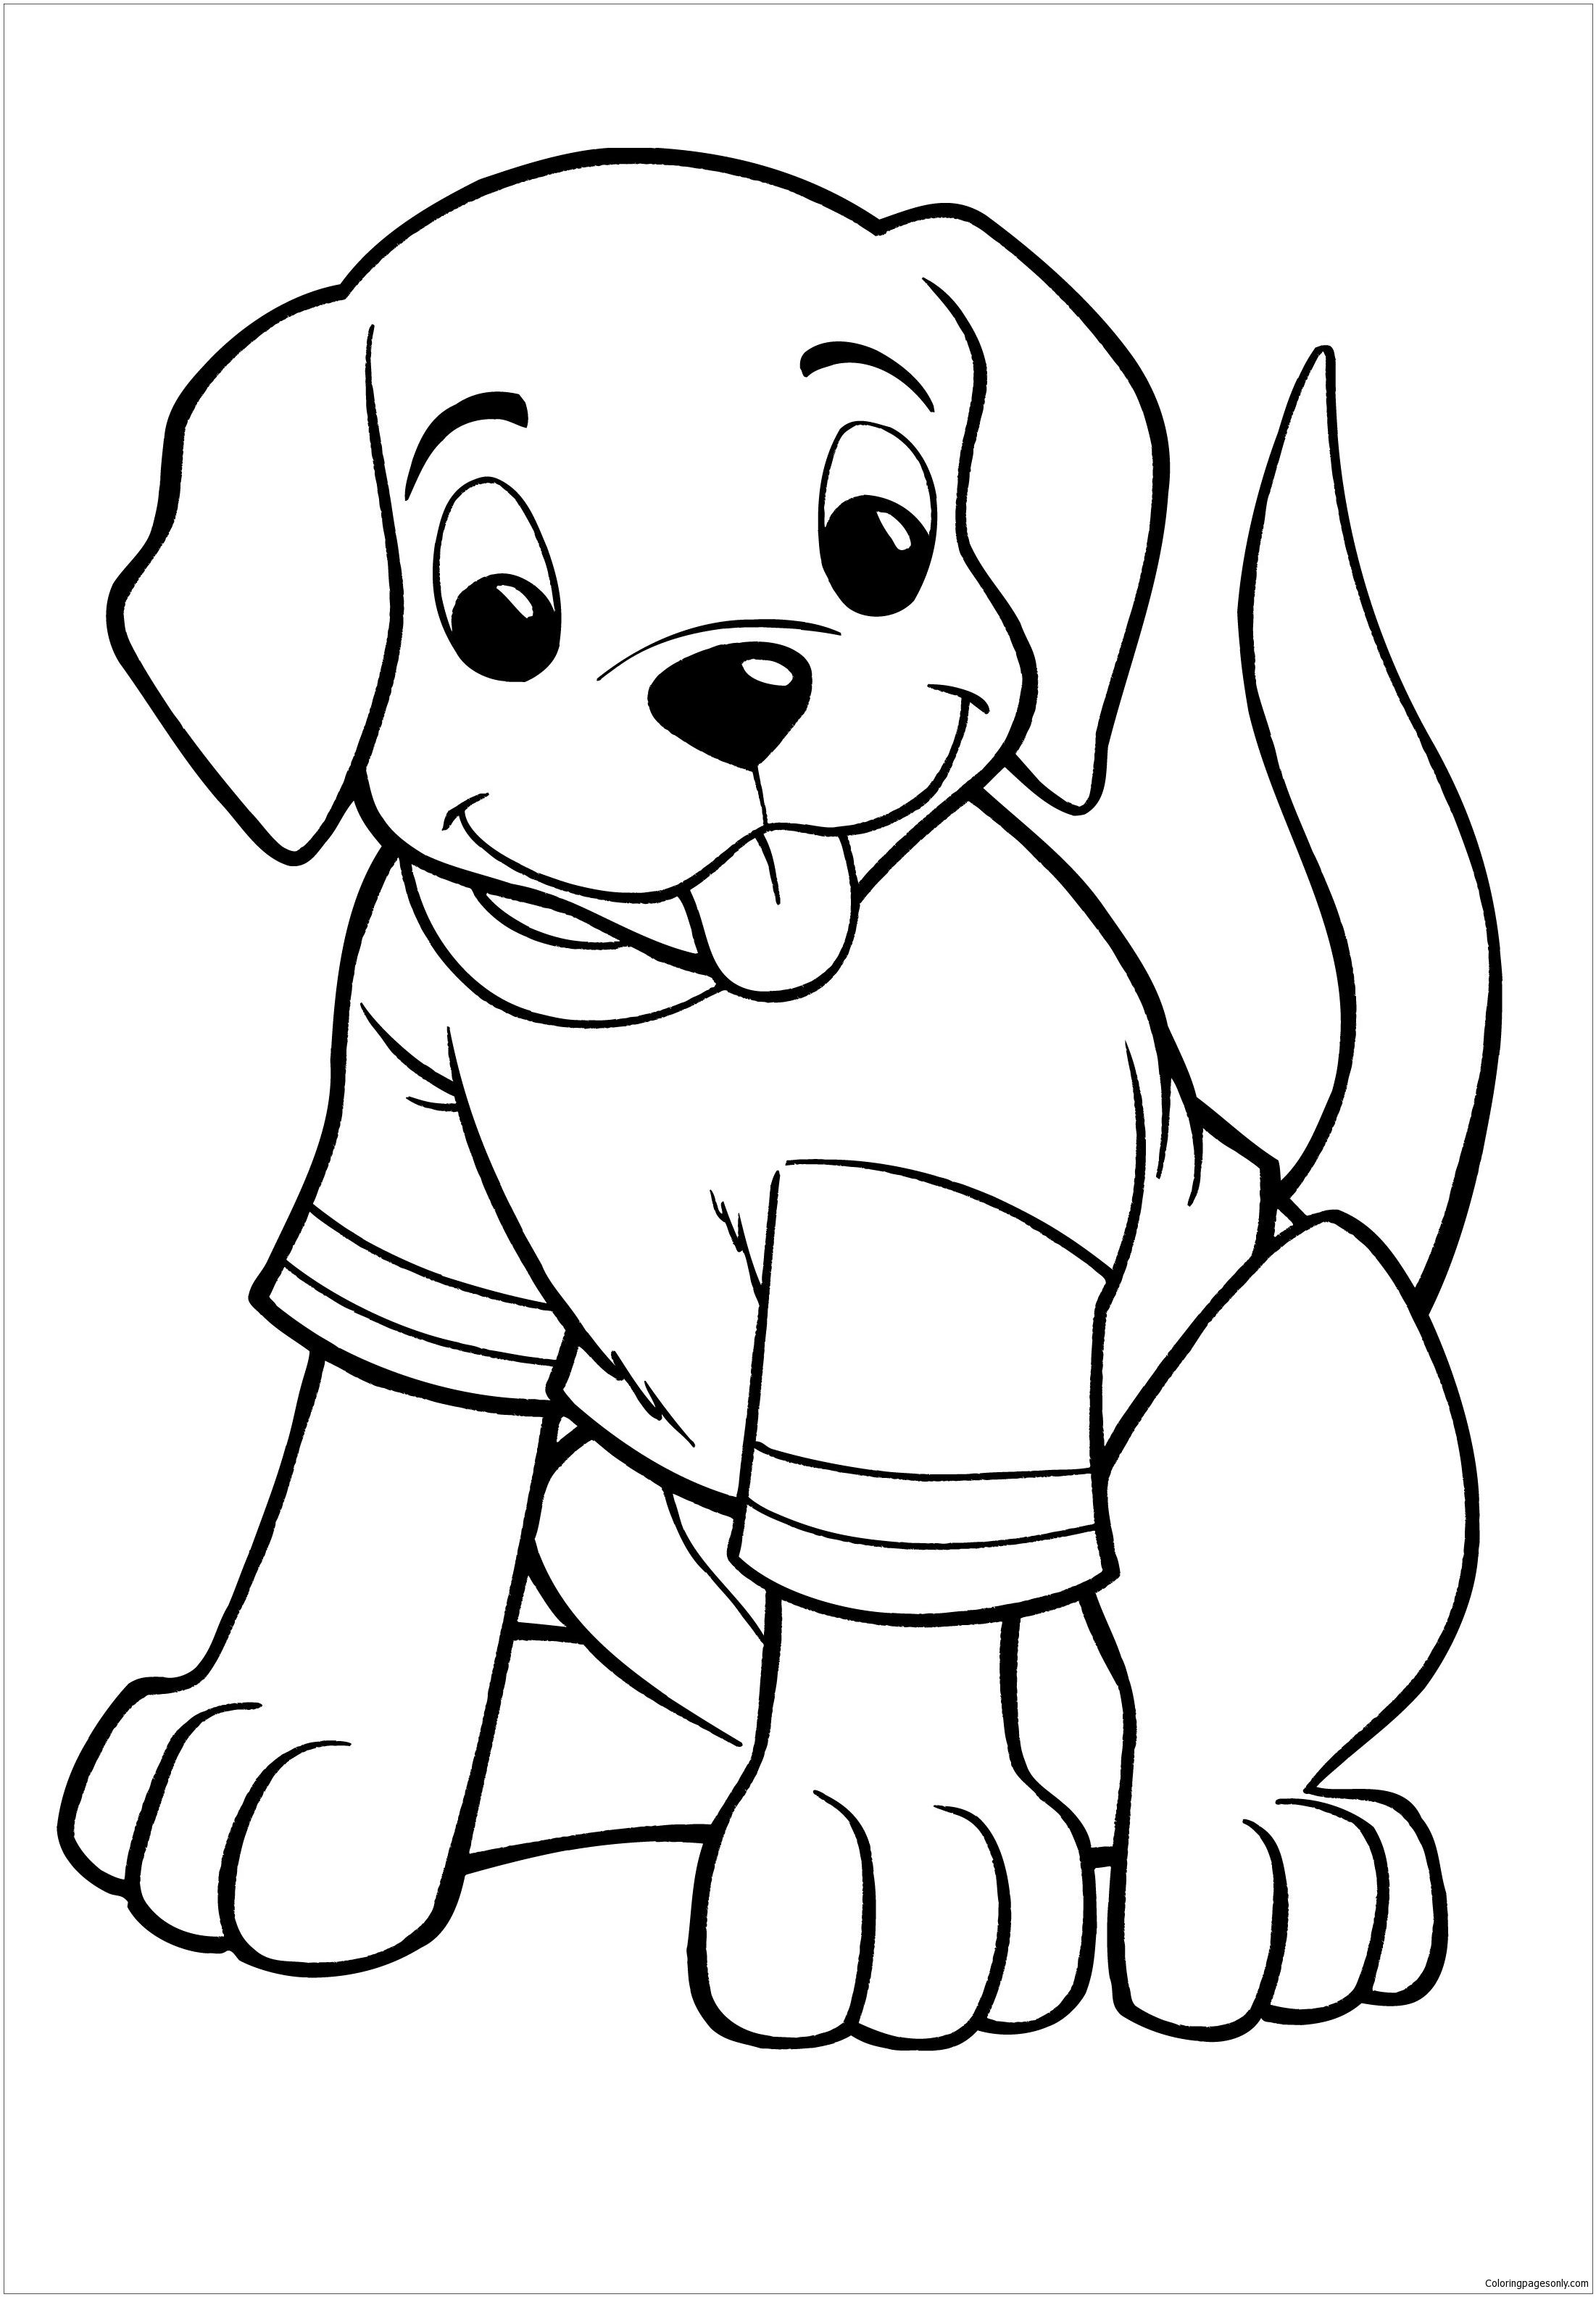 printable picture of a dog puppy coloring pages best coloring pages for kids dog picture a of printable